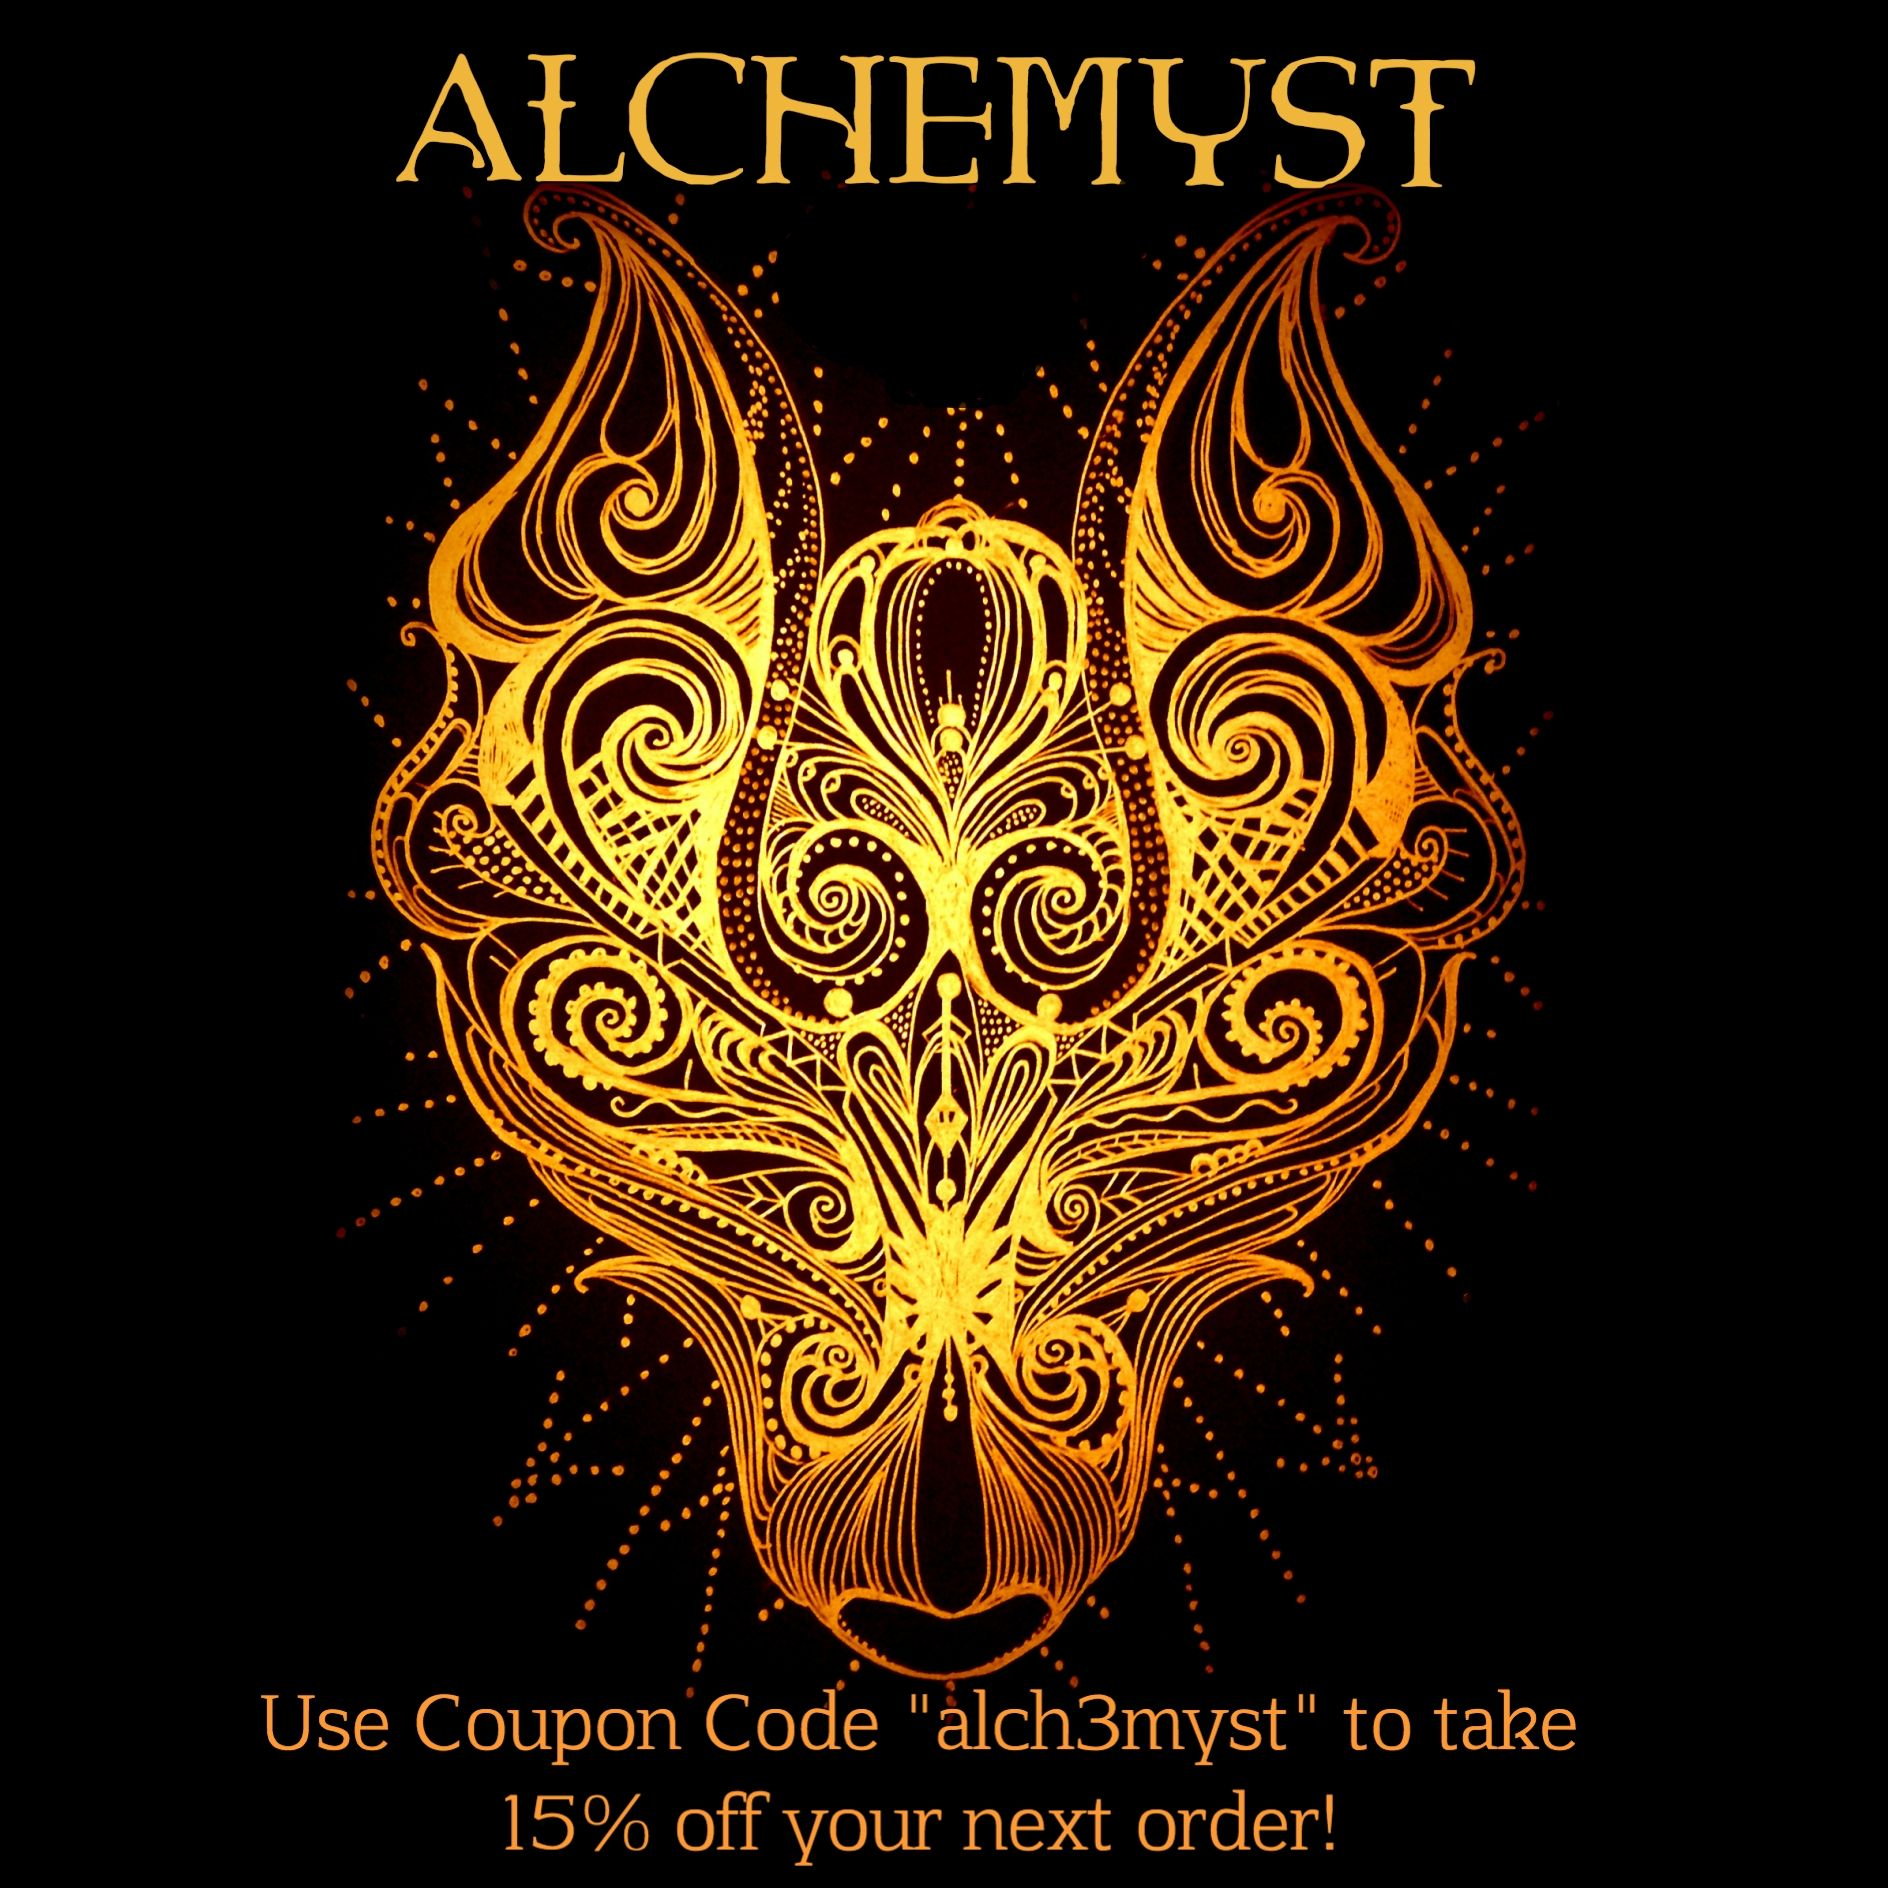 Take 15 off your next alchemyst order with coupon code alch3myst take 15 off your next alchemyst order with coupon code alch3myst fandeluxe Images